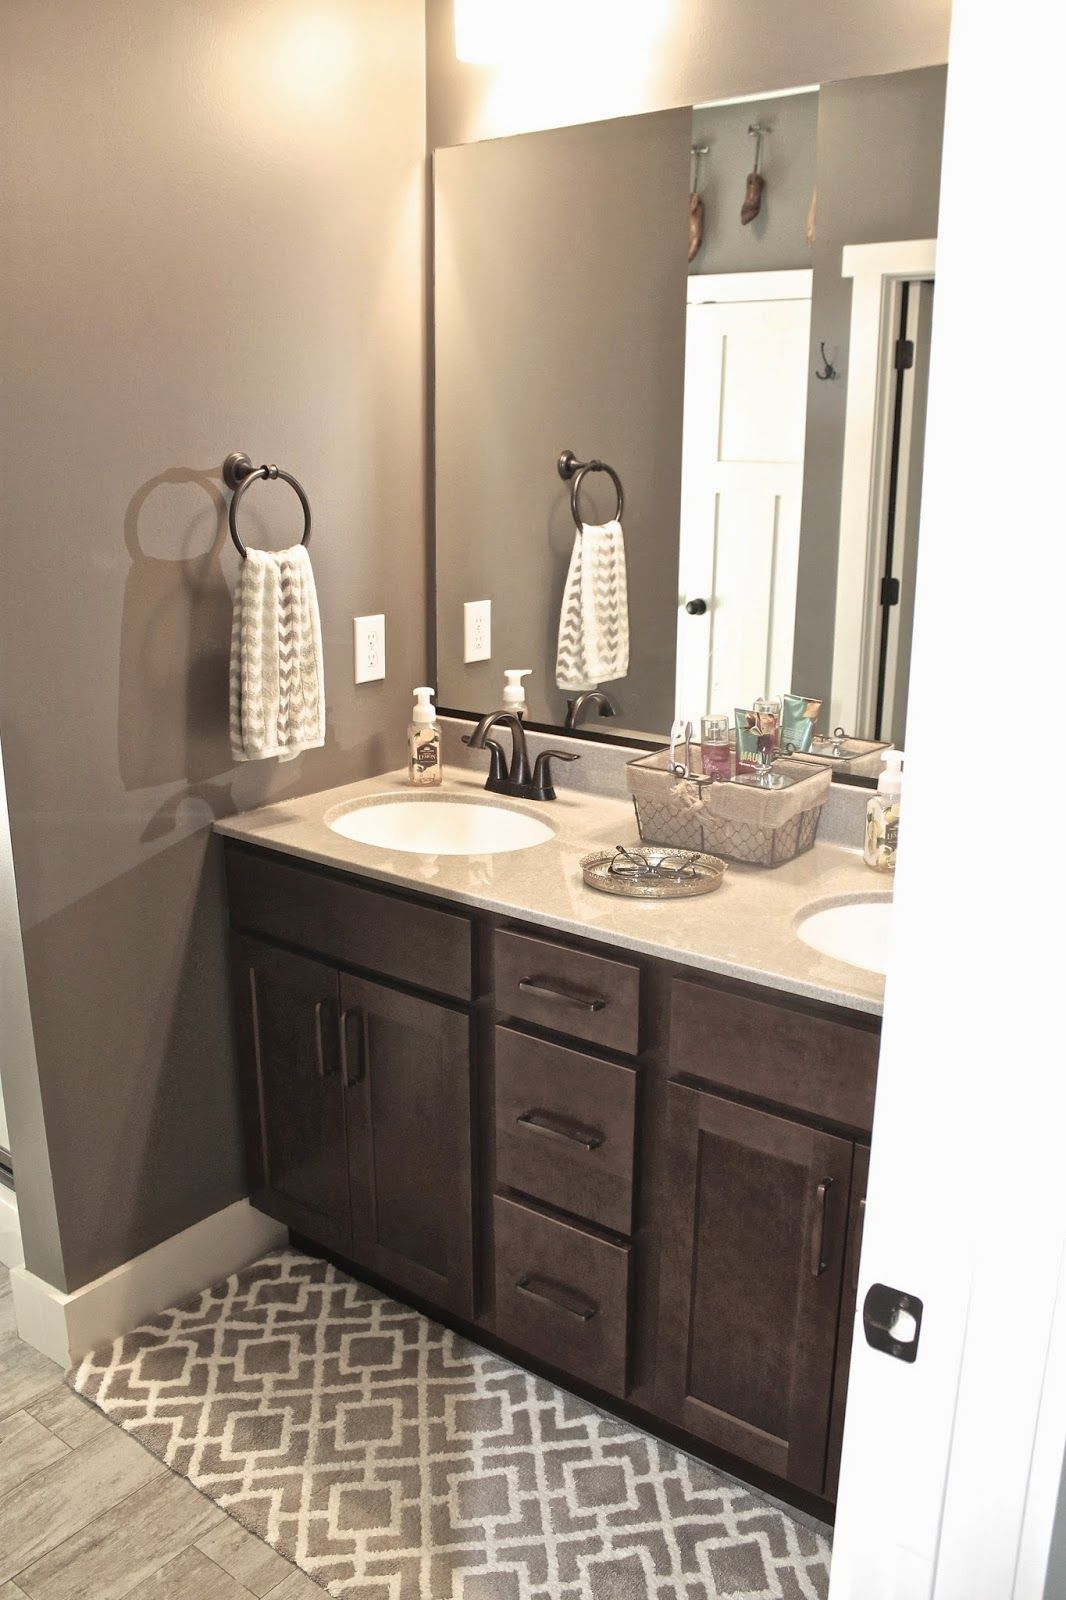 Mink and dover white favorite paint colors wall colors for Sherwin williams bathroom paint colors